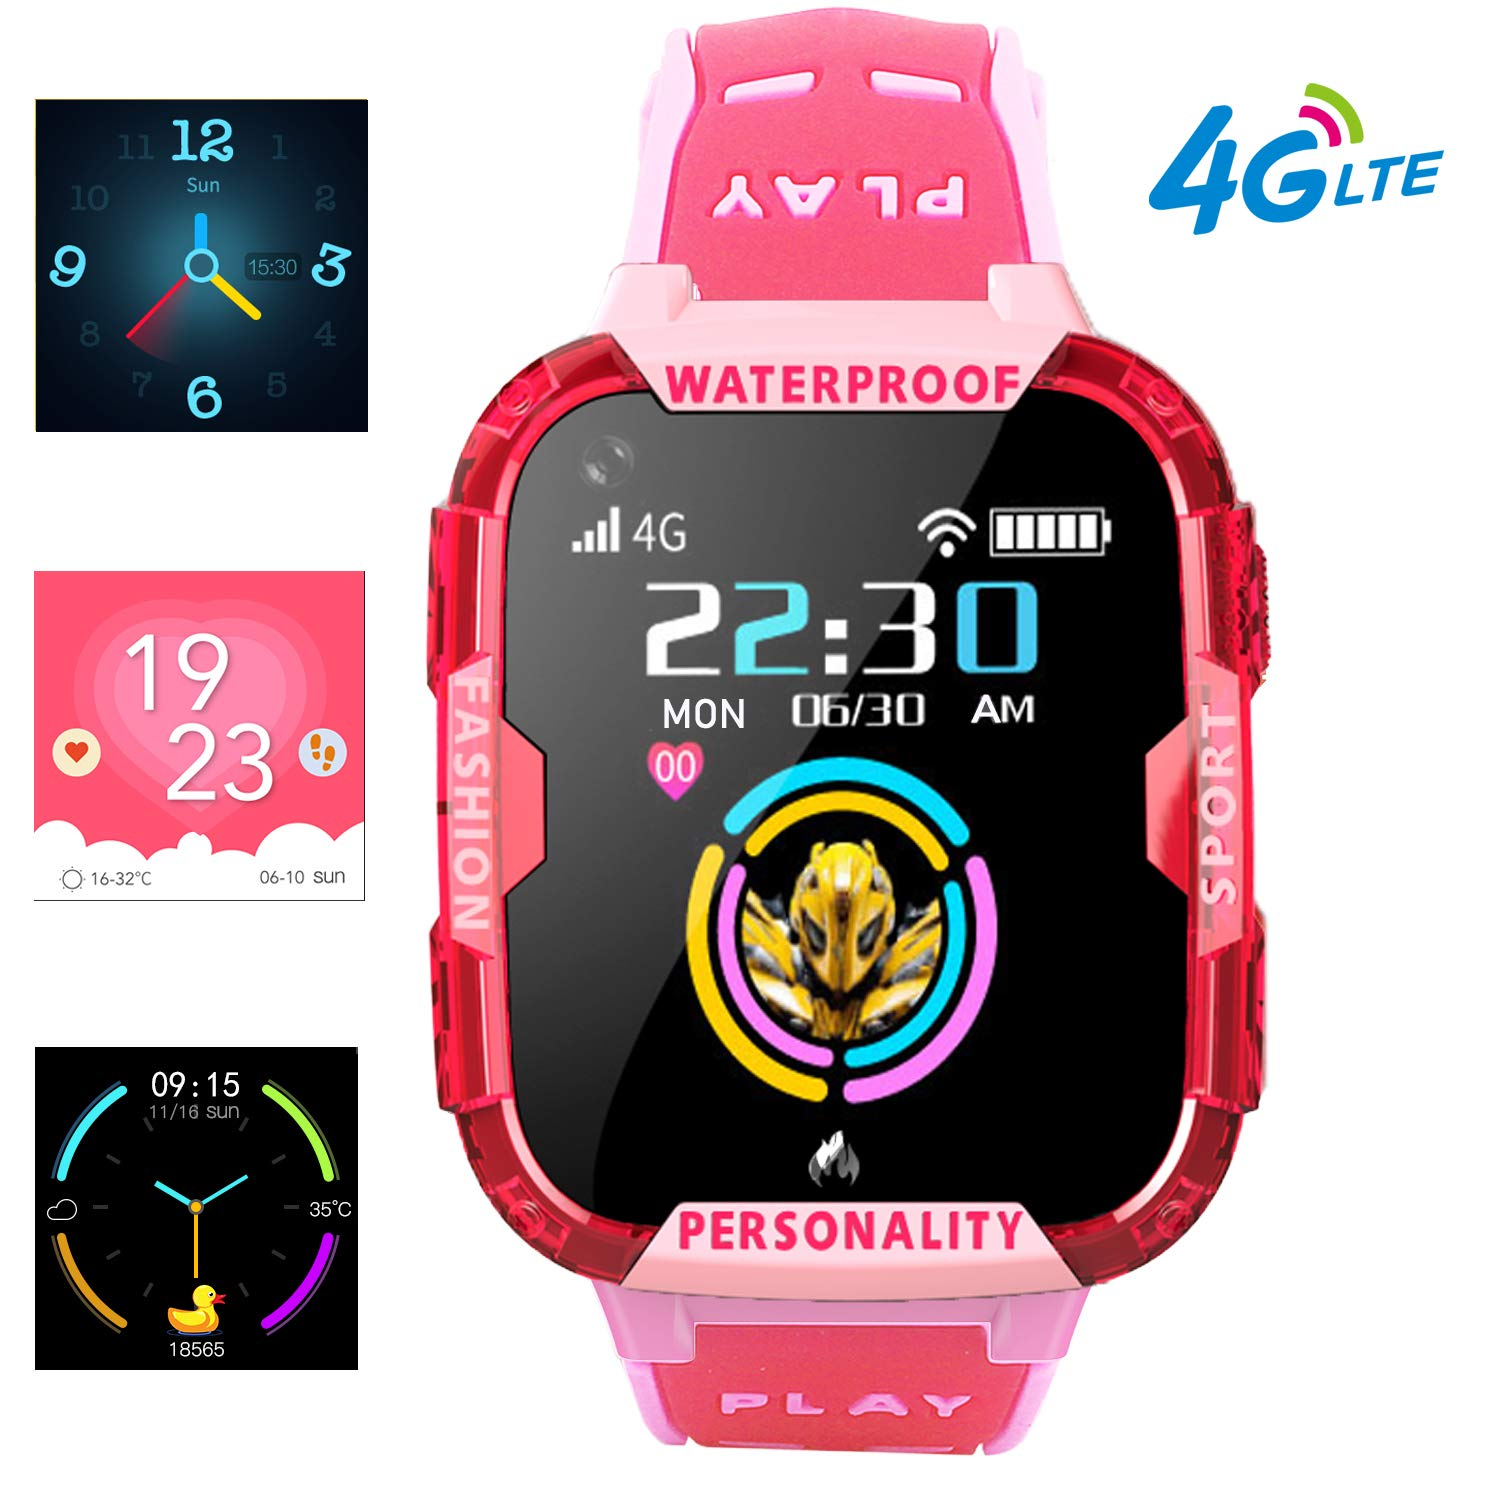 PTHTECHUS 4G Kids Smart Watch Phone - WiFi GPS Tracker Boys Girls Waterproof Smartwatch Touch Screen Watch with Call Voice Video Chat Pedometer ...